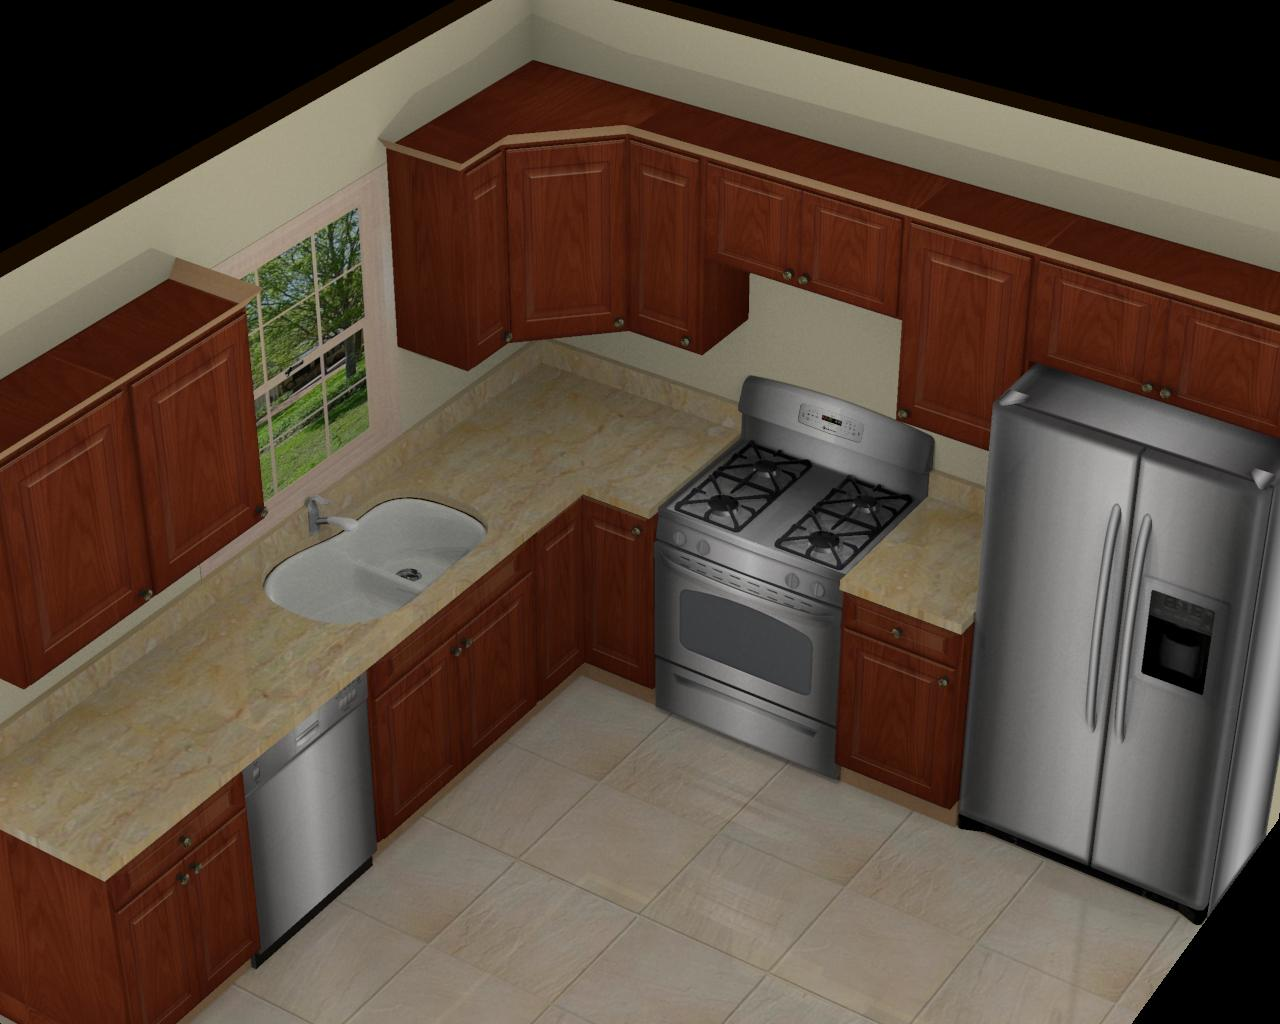 Foundation dezin decor 3d kitchen model design for Kitchen and bathroom cabinets